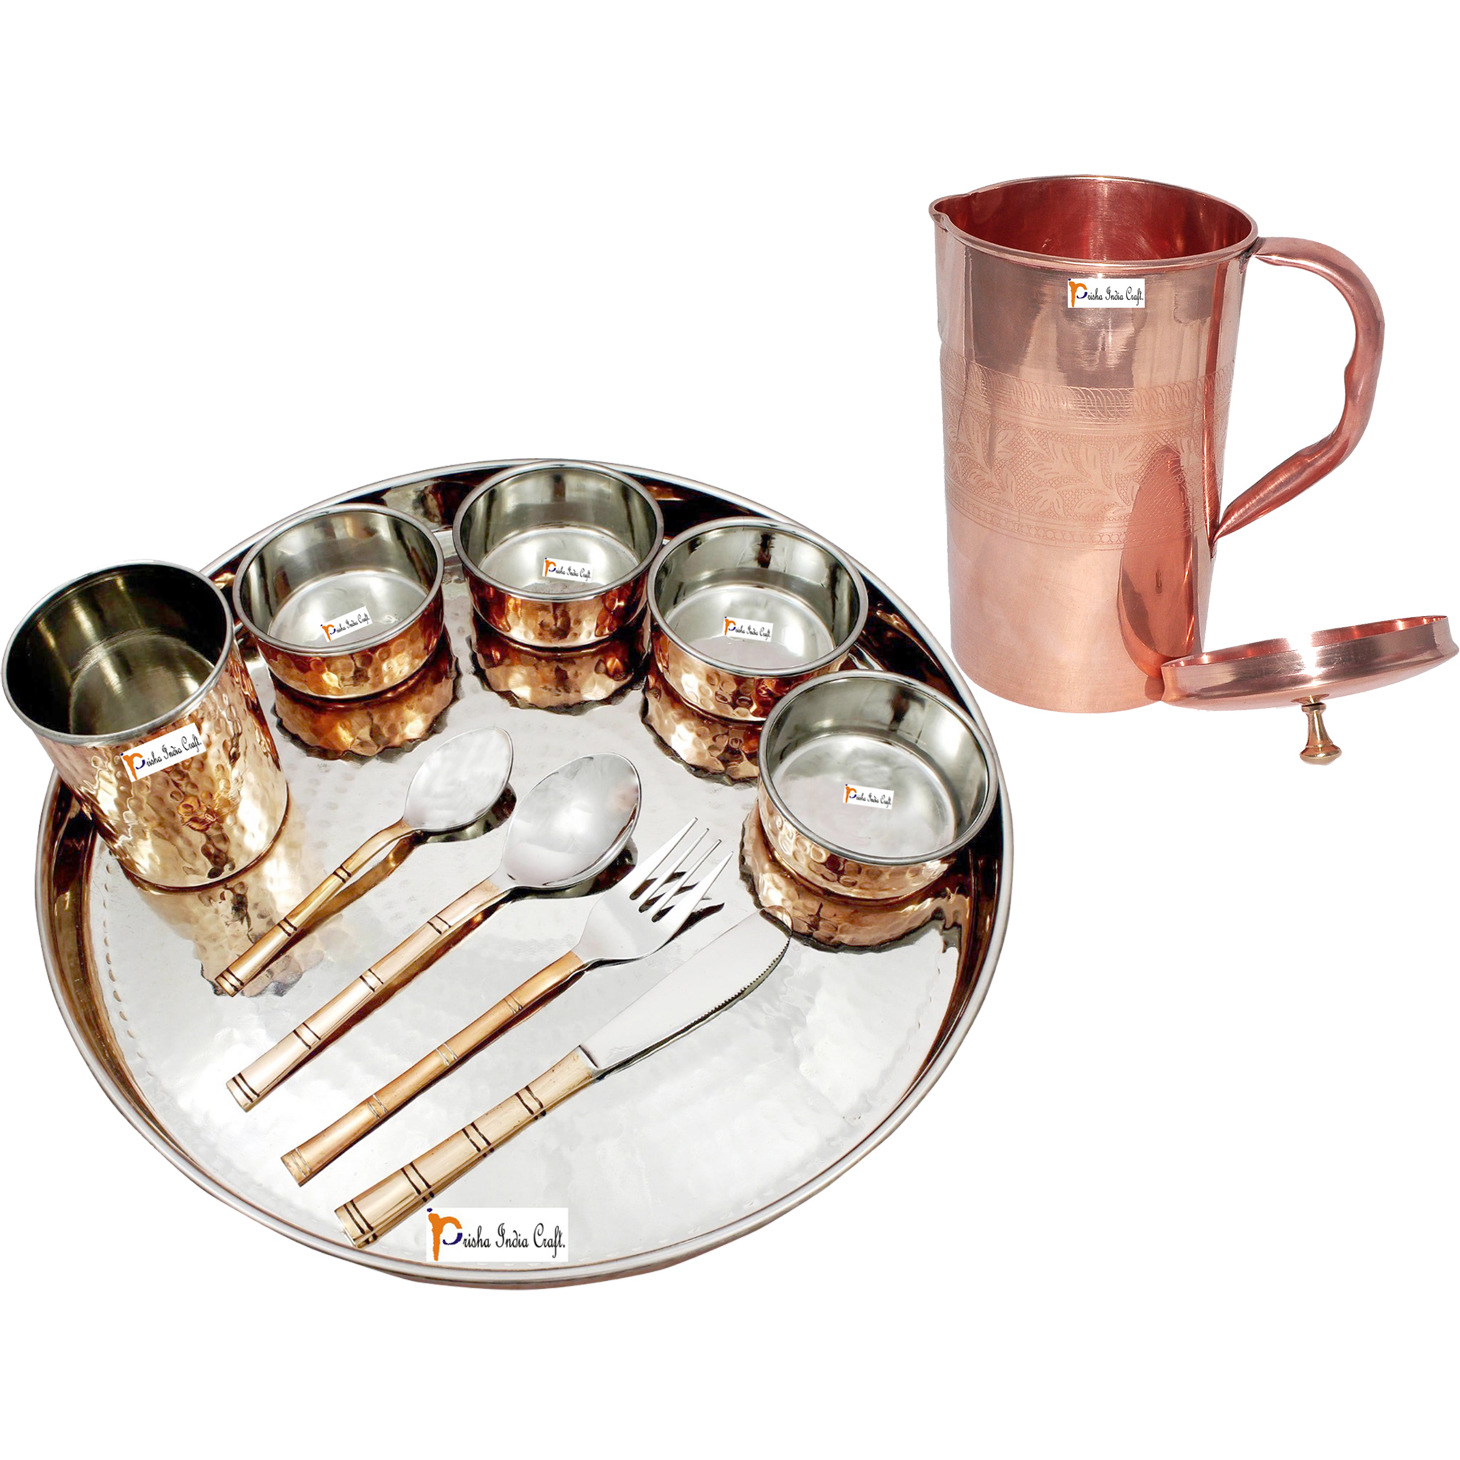 Prisha India Craft B. Dinnerware Traditional Stainless Steel Copper Dinner Set of Thali Plate, Bowls, Glass and Spoons, Dia 13  With 1 Pure Copper Embossed Pitcher Jug - Christmas Gift